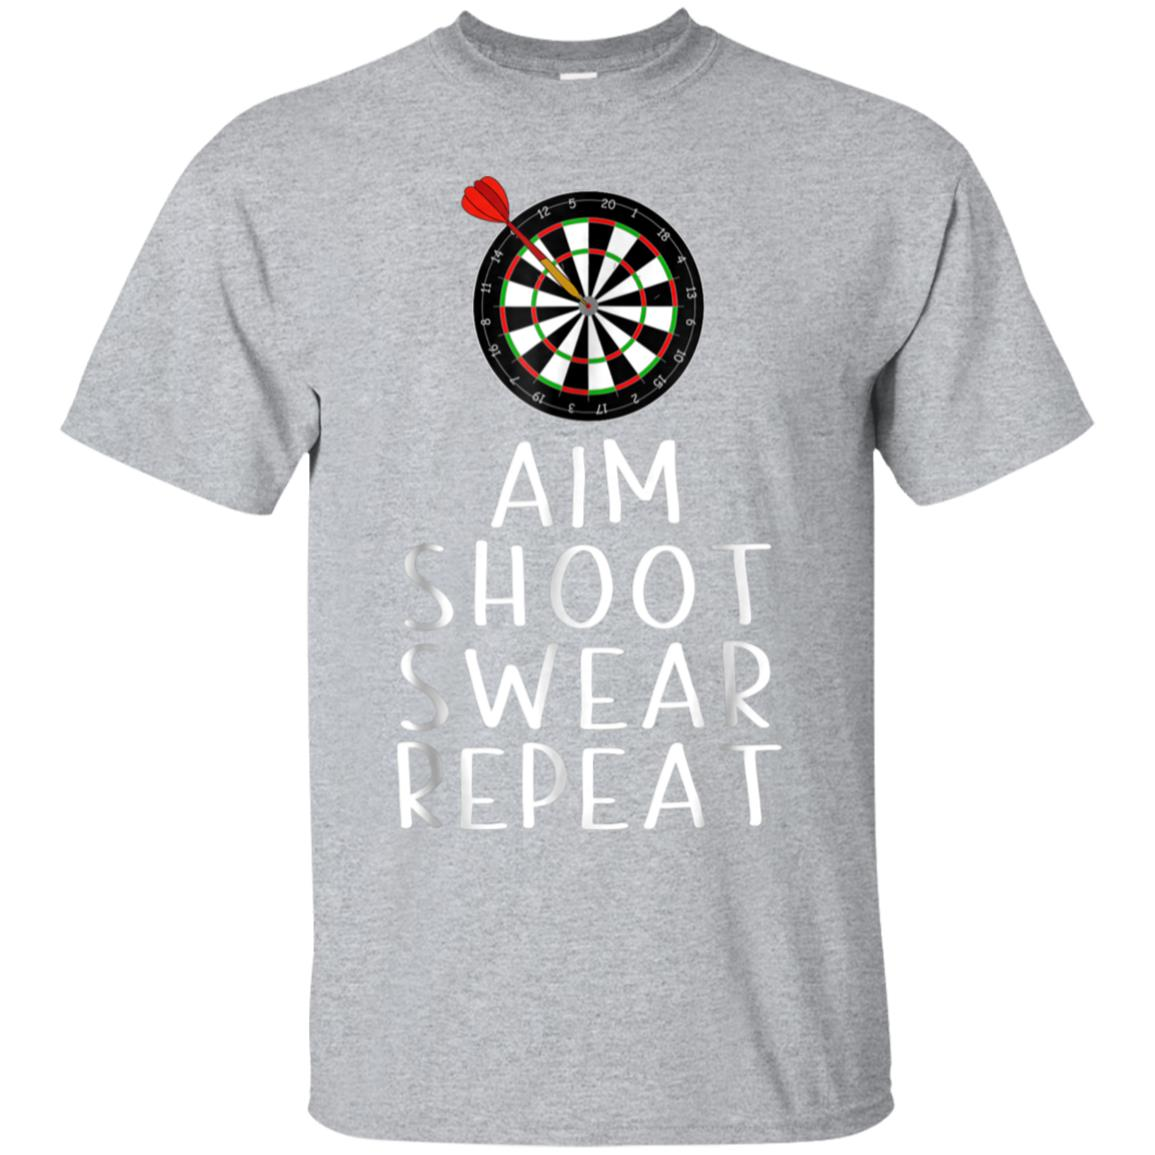 Darts T-shirt Aim Shoot Swear Repeat Darts Player Gift Shirt 99promocode